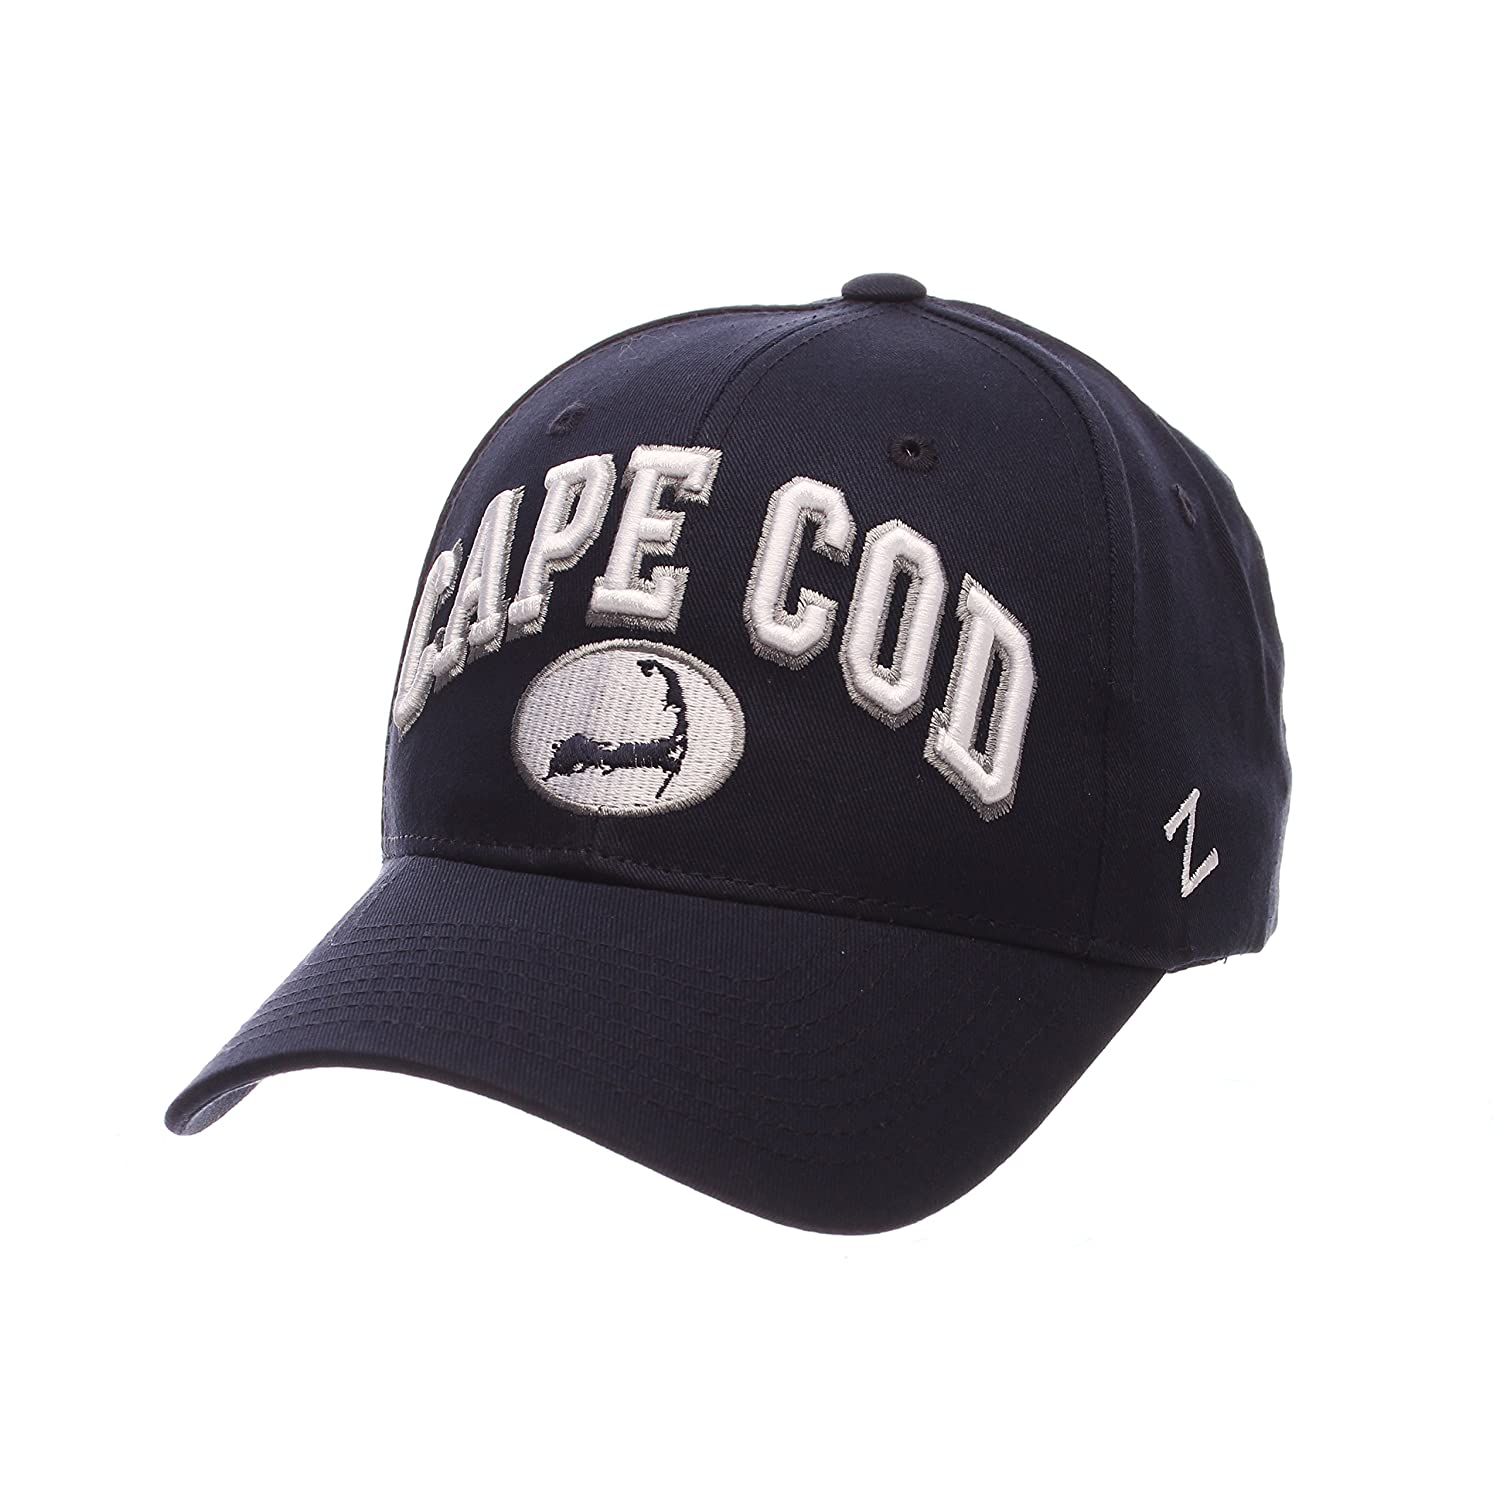 62e75e9d9b4 Amazon.com   ZHATS Cape Cod The Sport Relaxed Fit Snapback Cap - NCAA One  Size Adjustable Baseball Hat   Sports   Outdoors